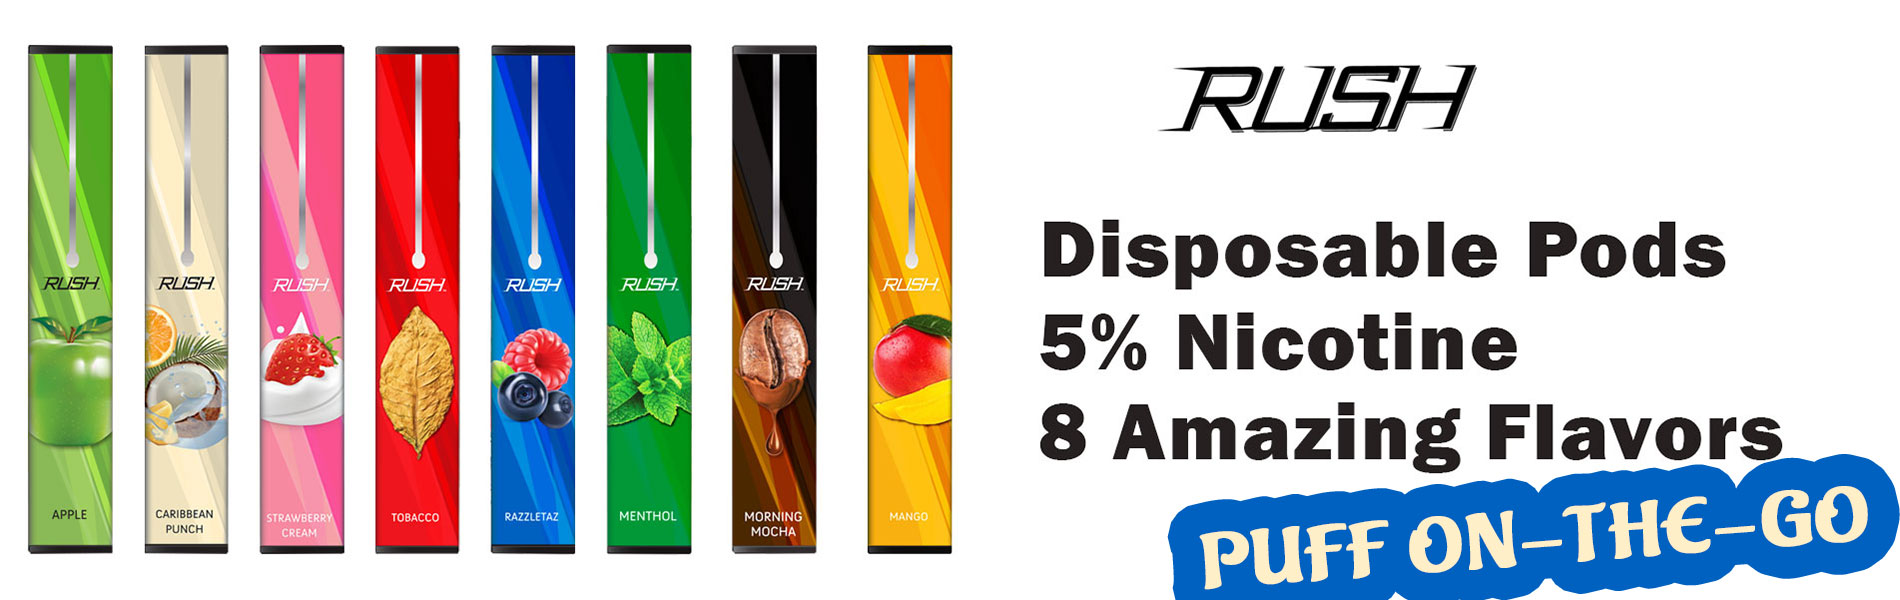 rush disposable pod vape